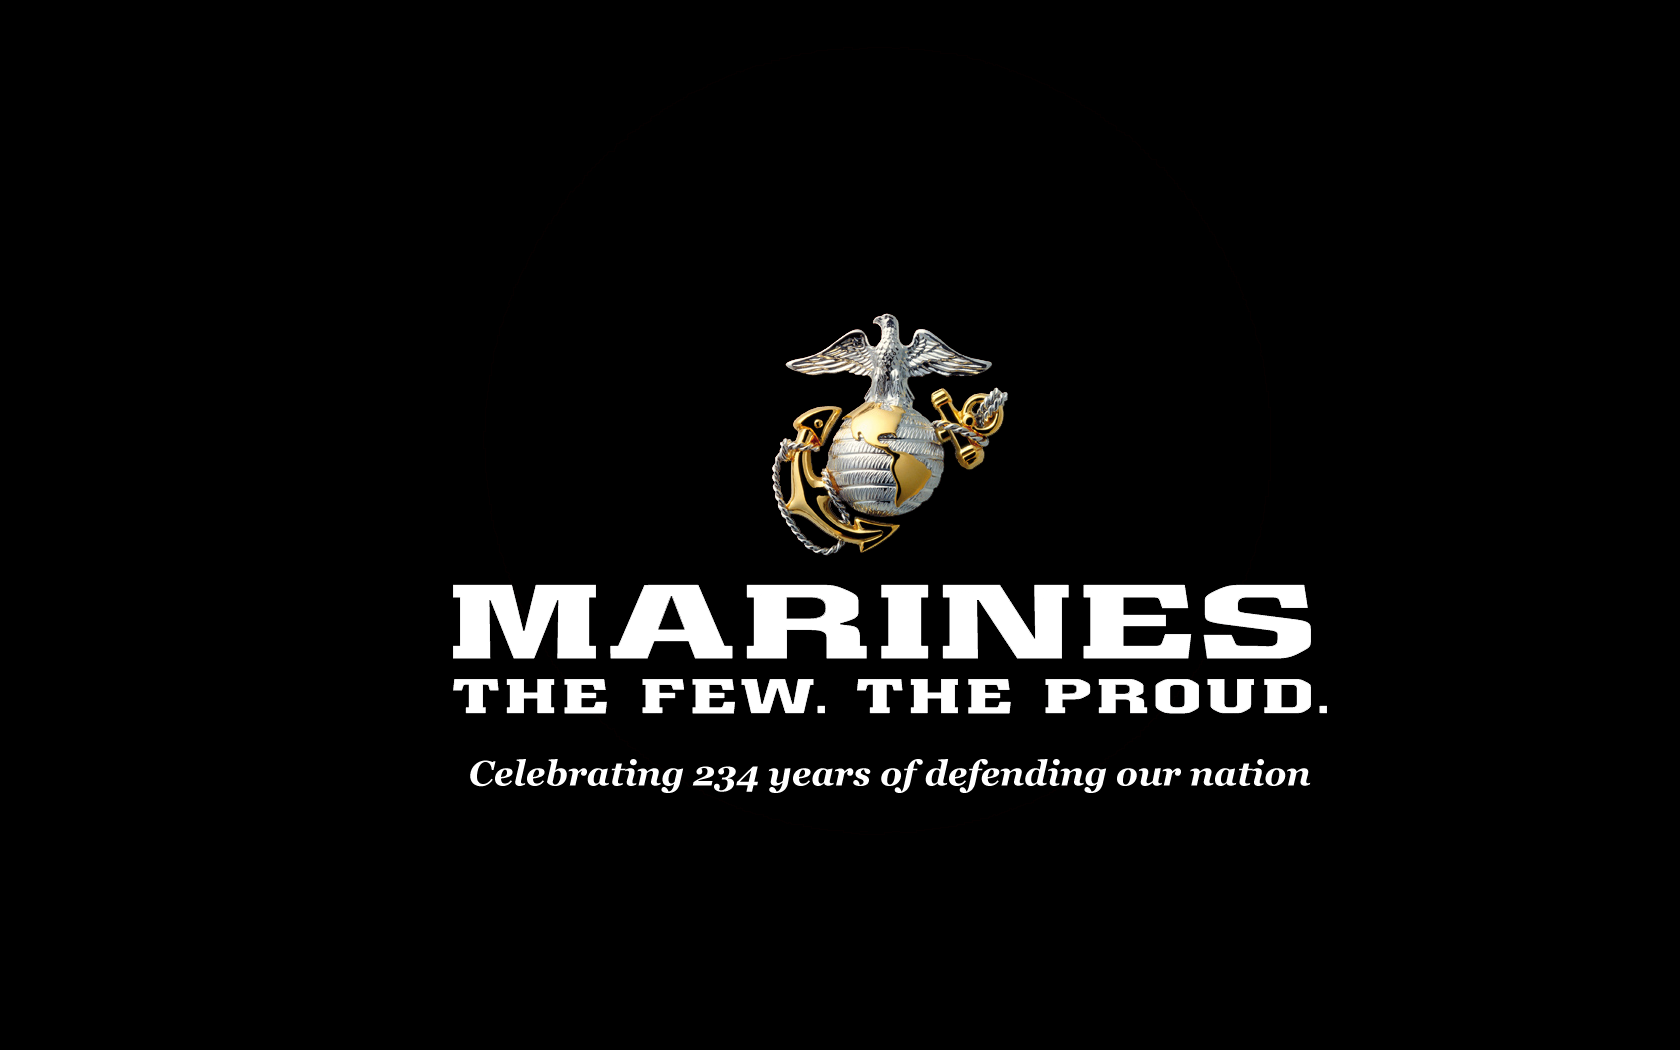 Marine Corps Desktop Backgrounds 1680x1050